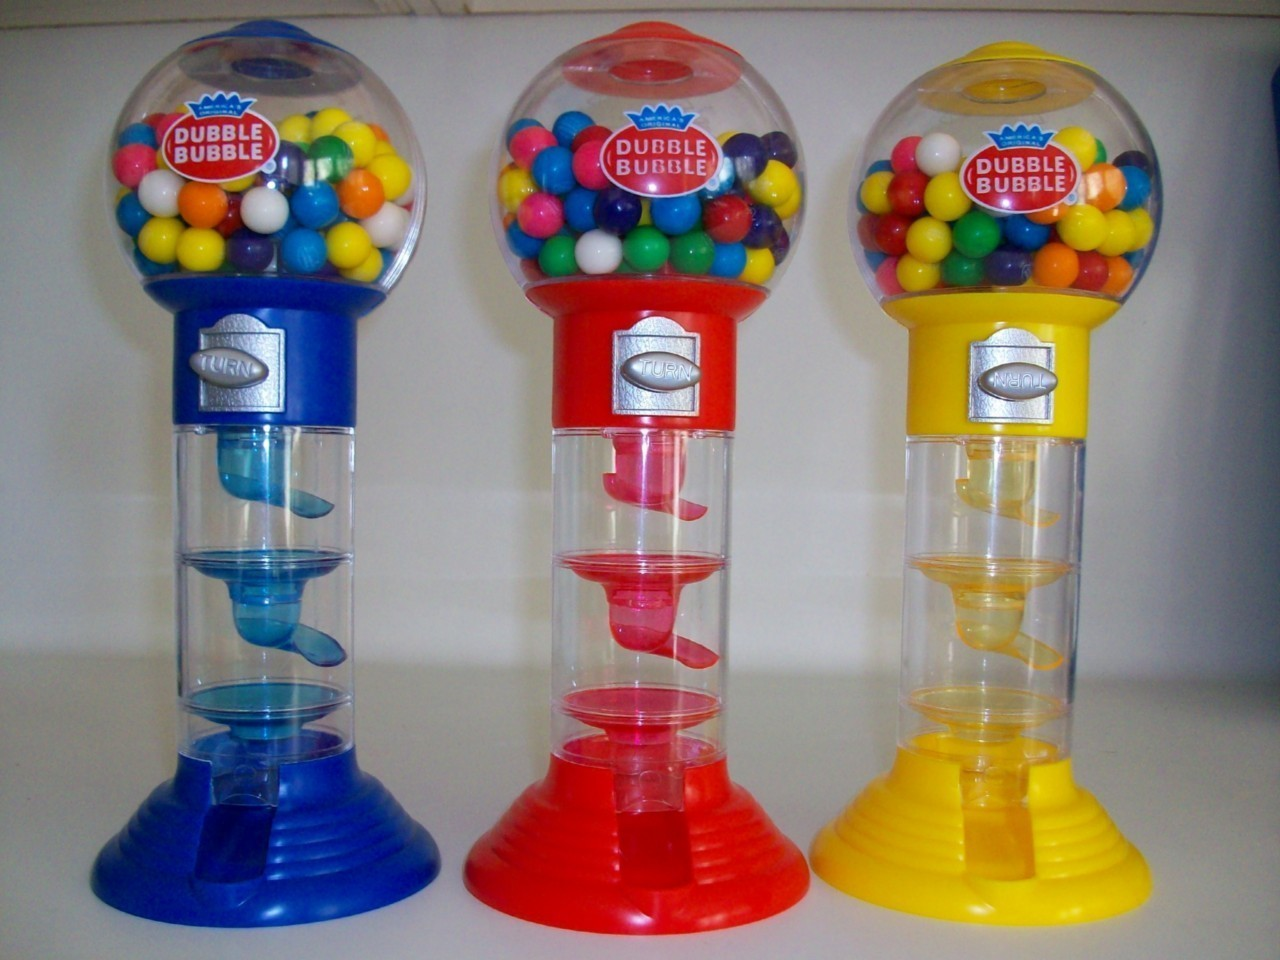 10 5 Gumball Dubble Bubble Machine Gum Balls New T Toy